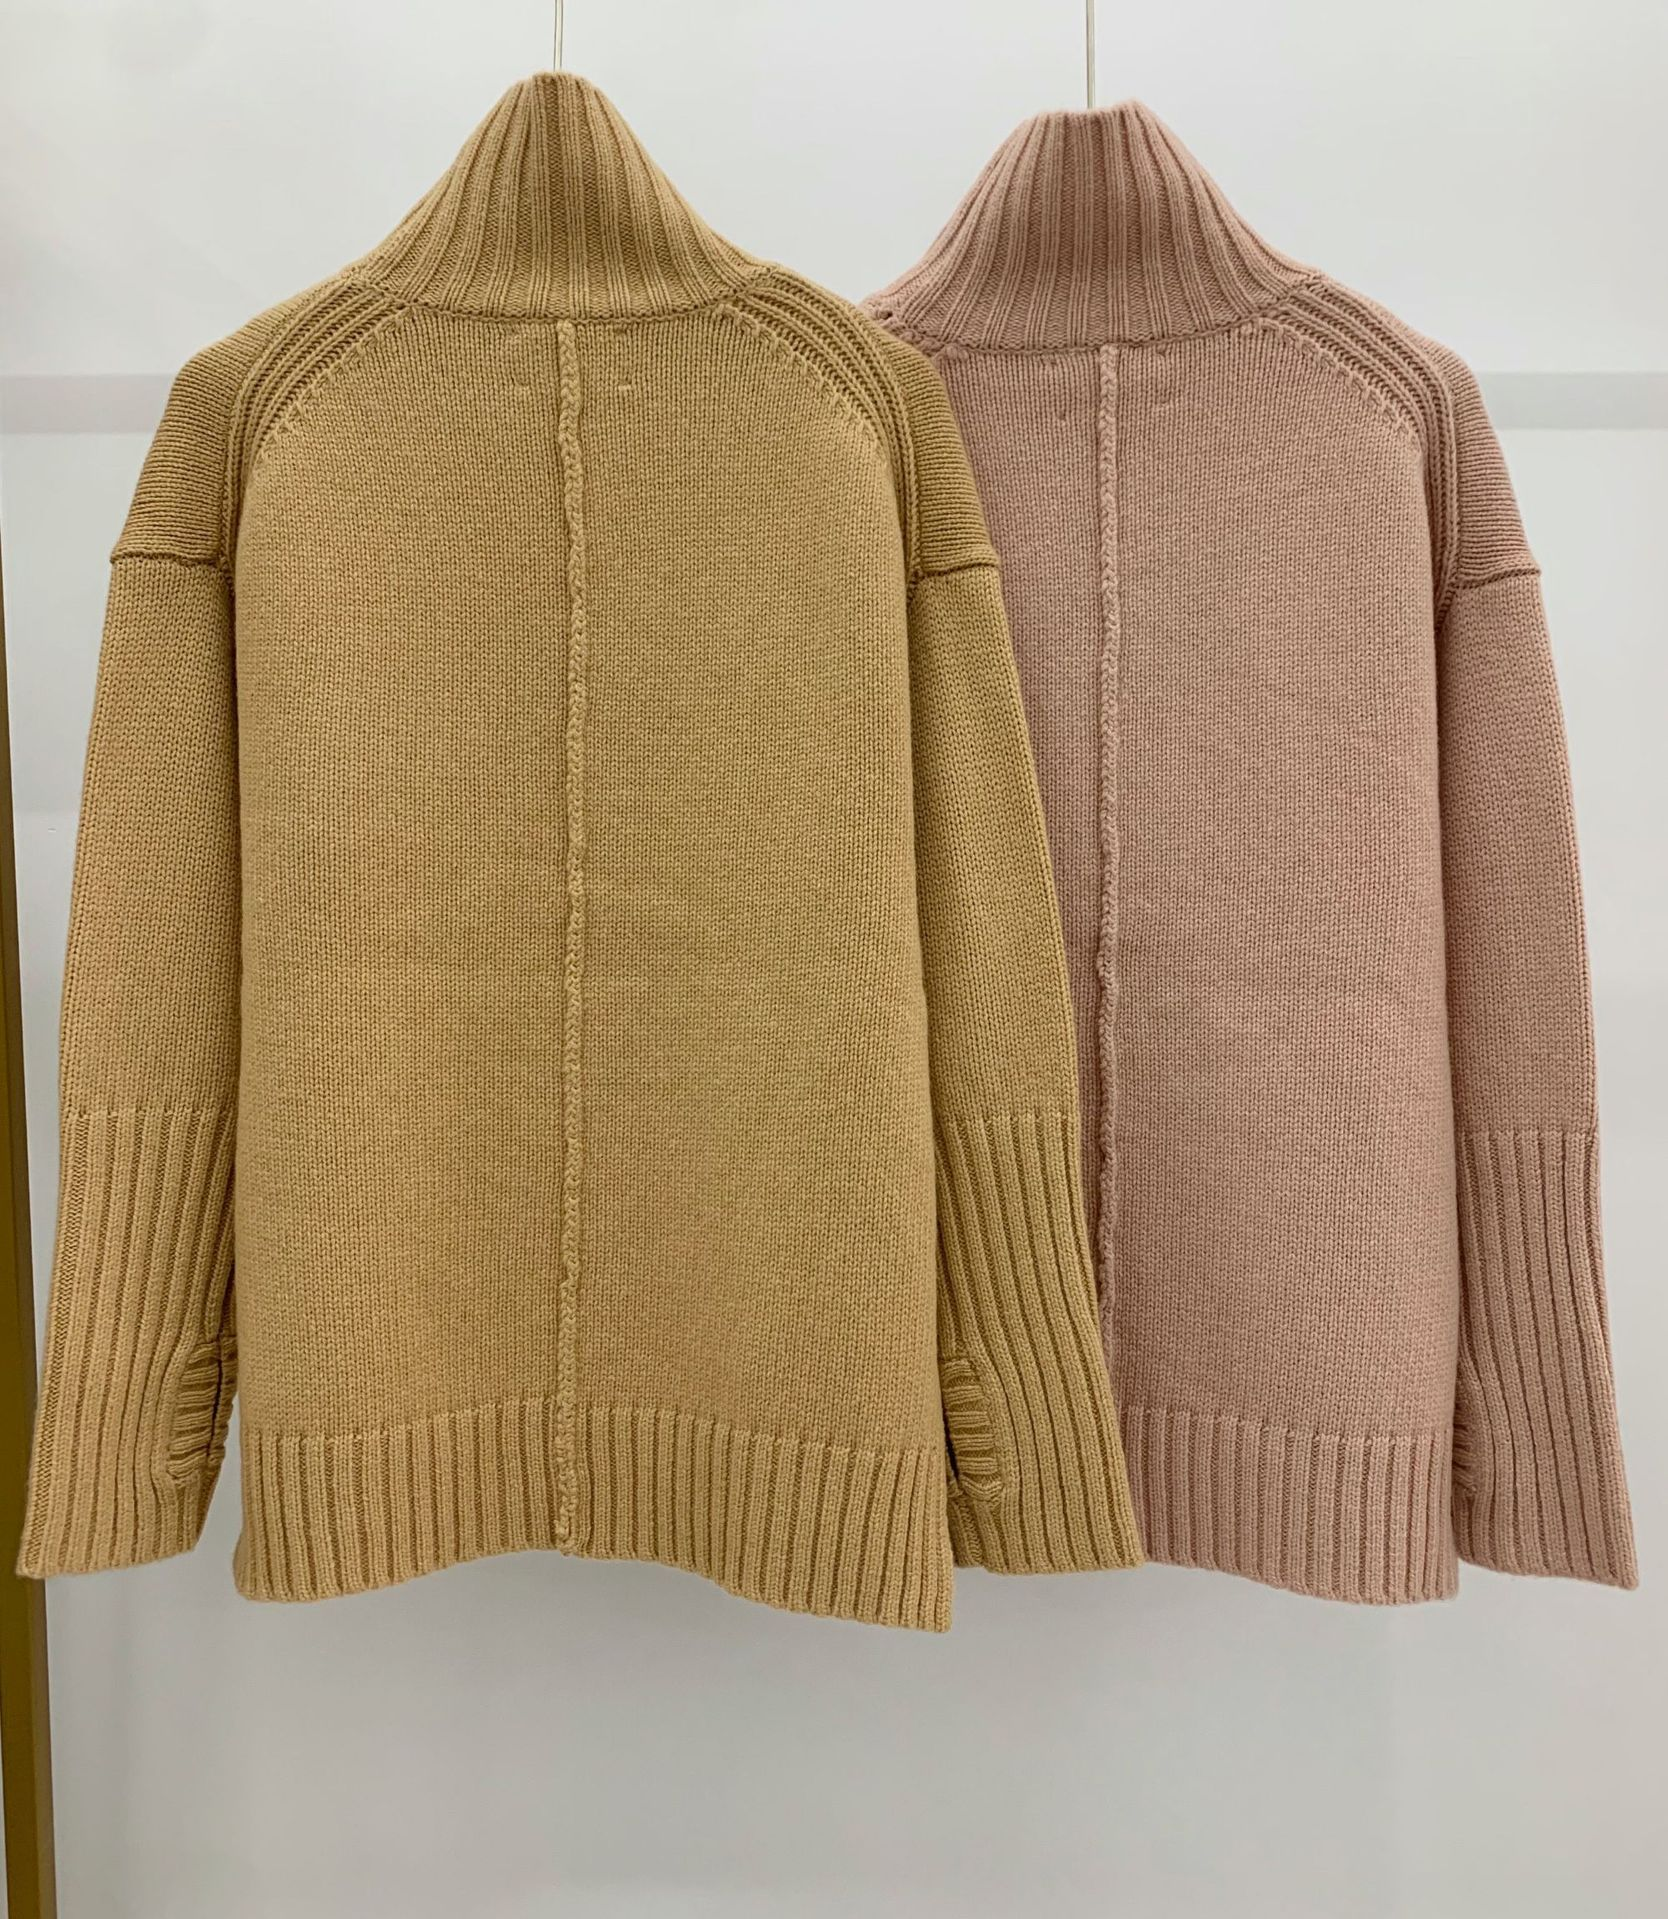 2021 Autumn and Winter New High-necked Letter Gold and Silver Thread Design Wool Cashmere Knitted Sweater Girl enlarge